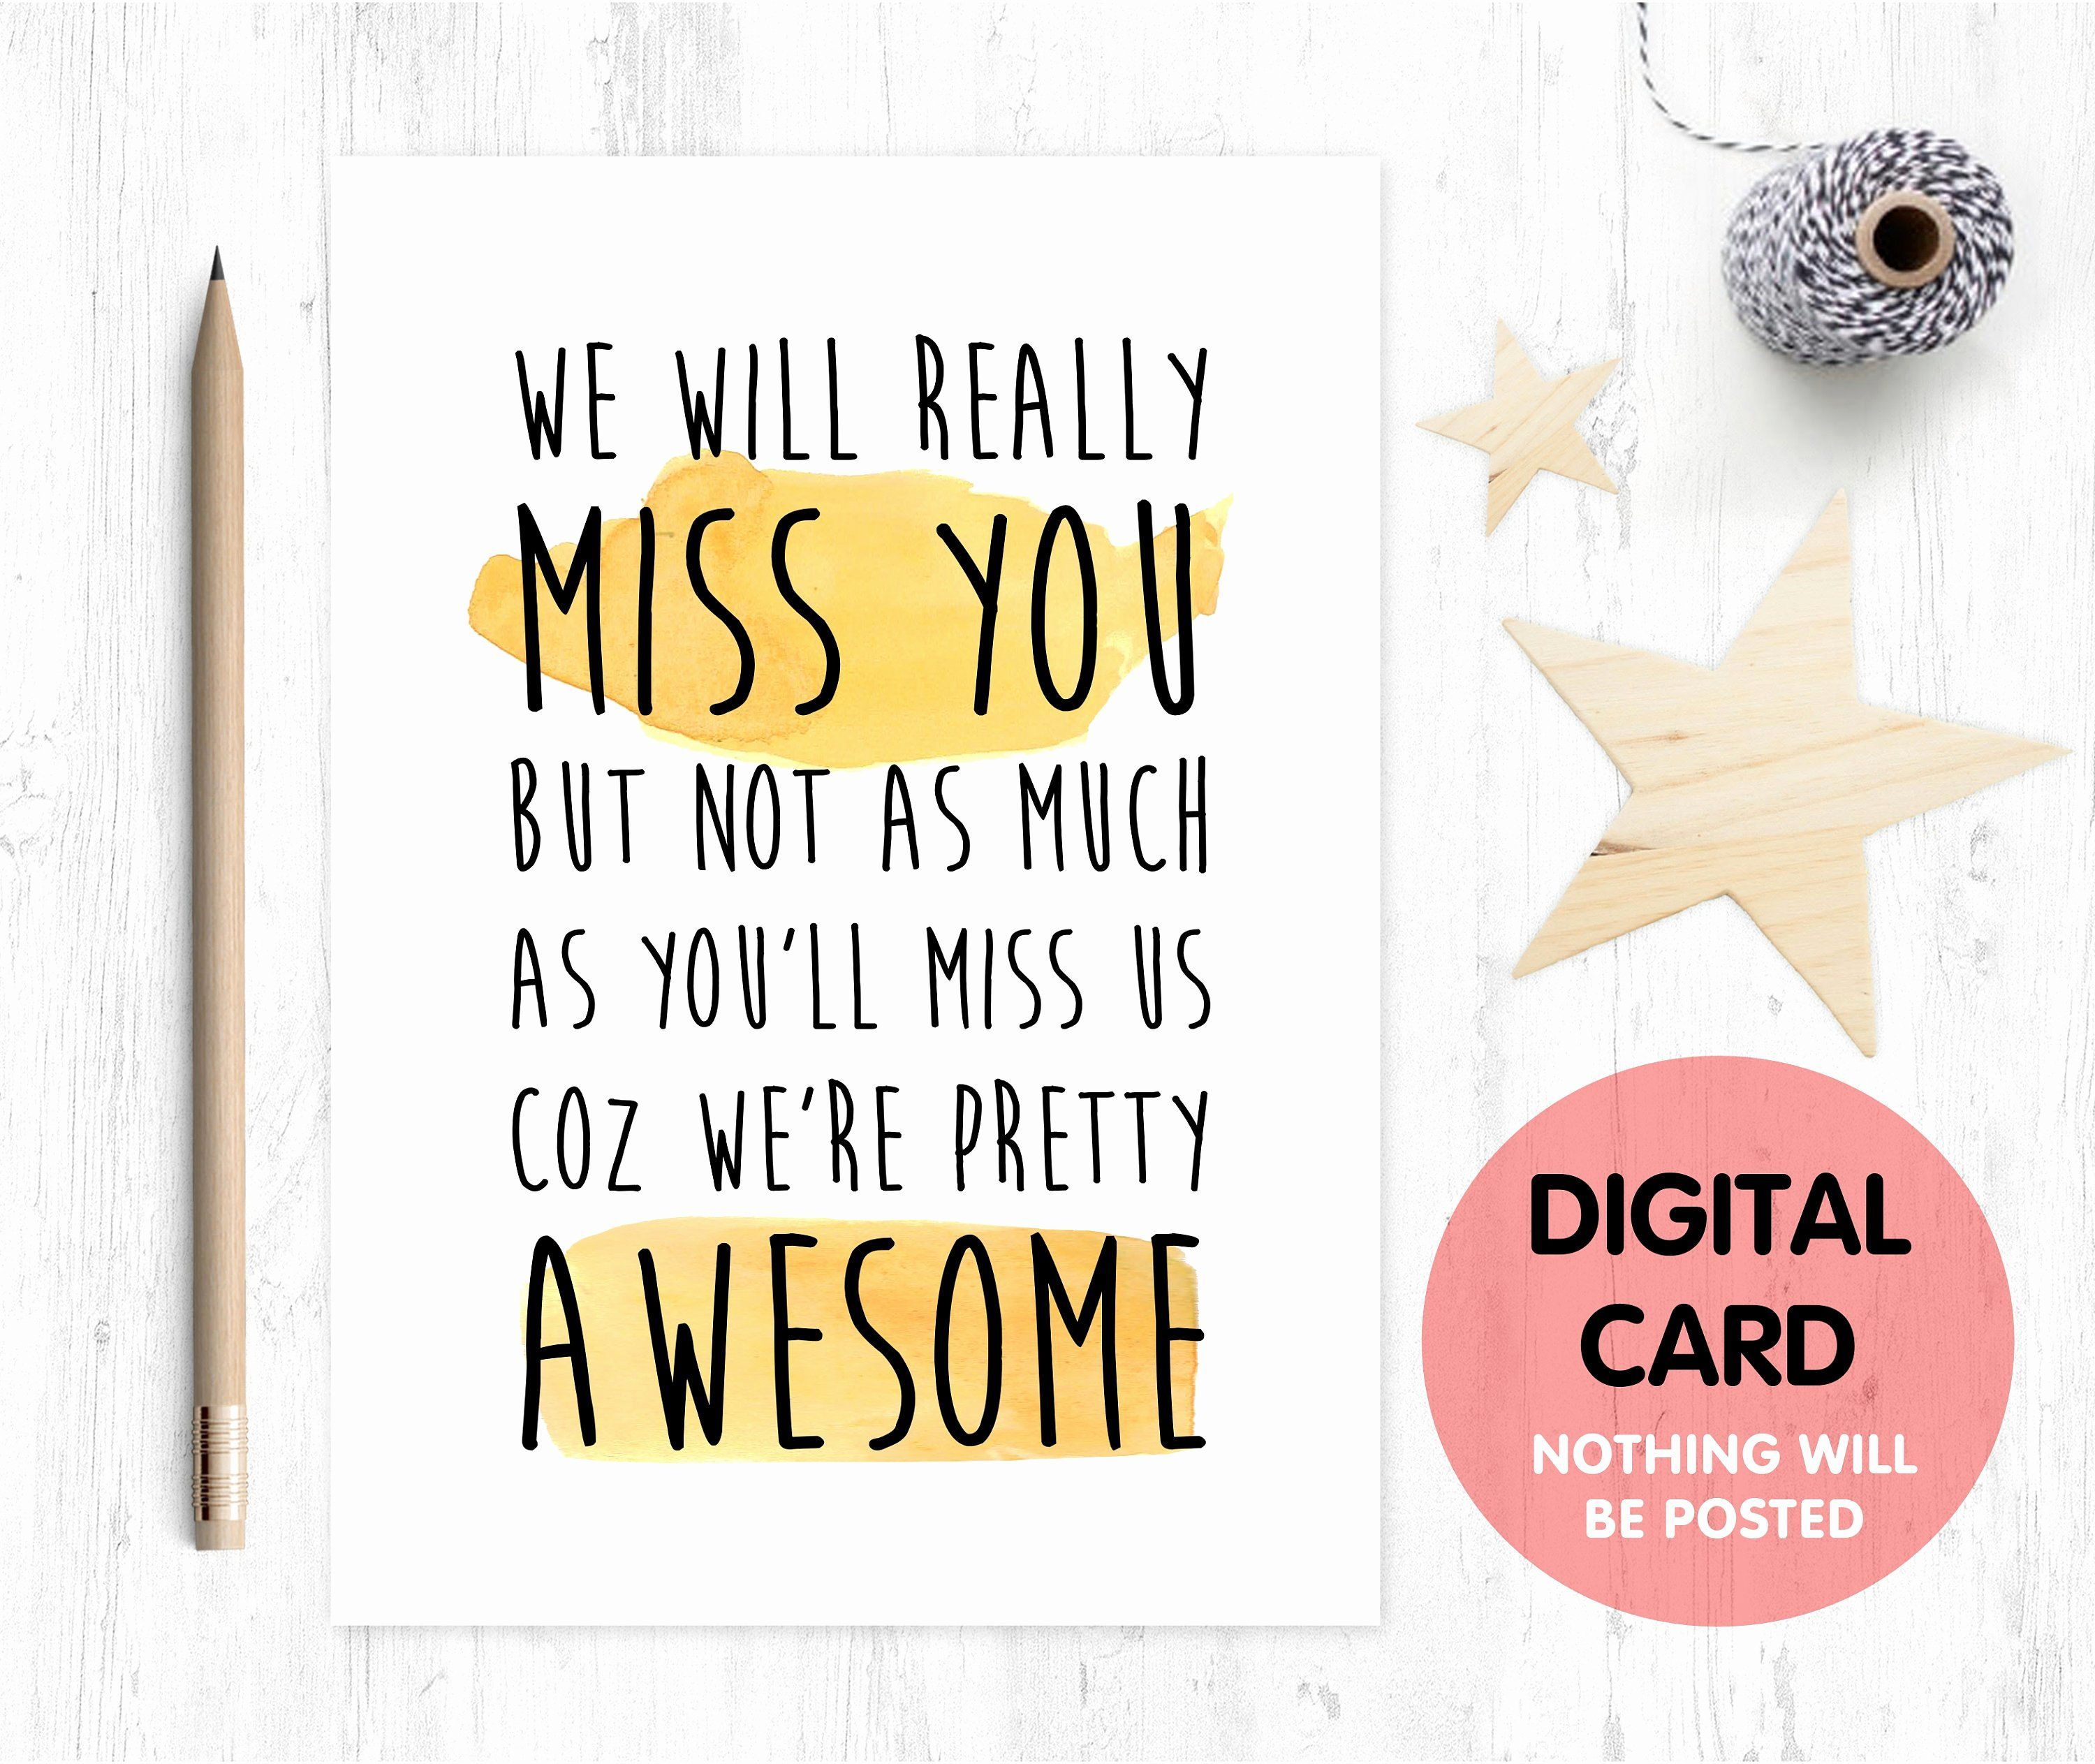 Farewell Card Template New Free Retirement Cards To Print Ryaneriverstorytelling Farewell Cards Retirement Greetings Retirement Cards